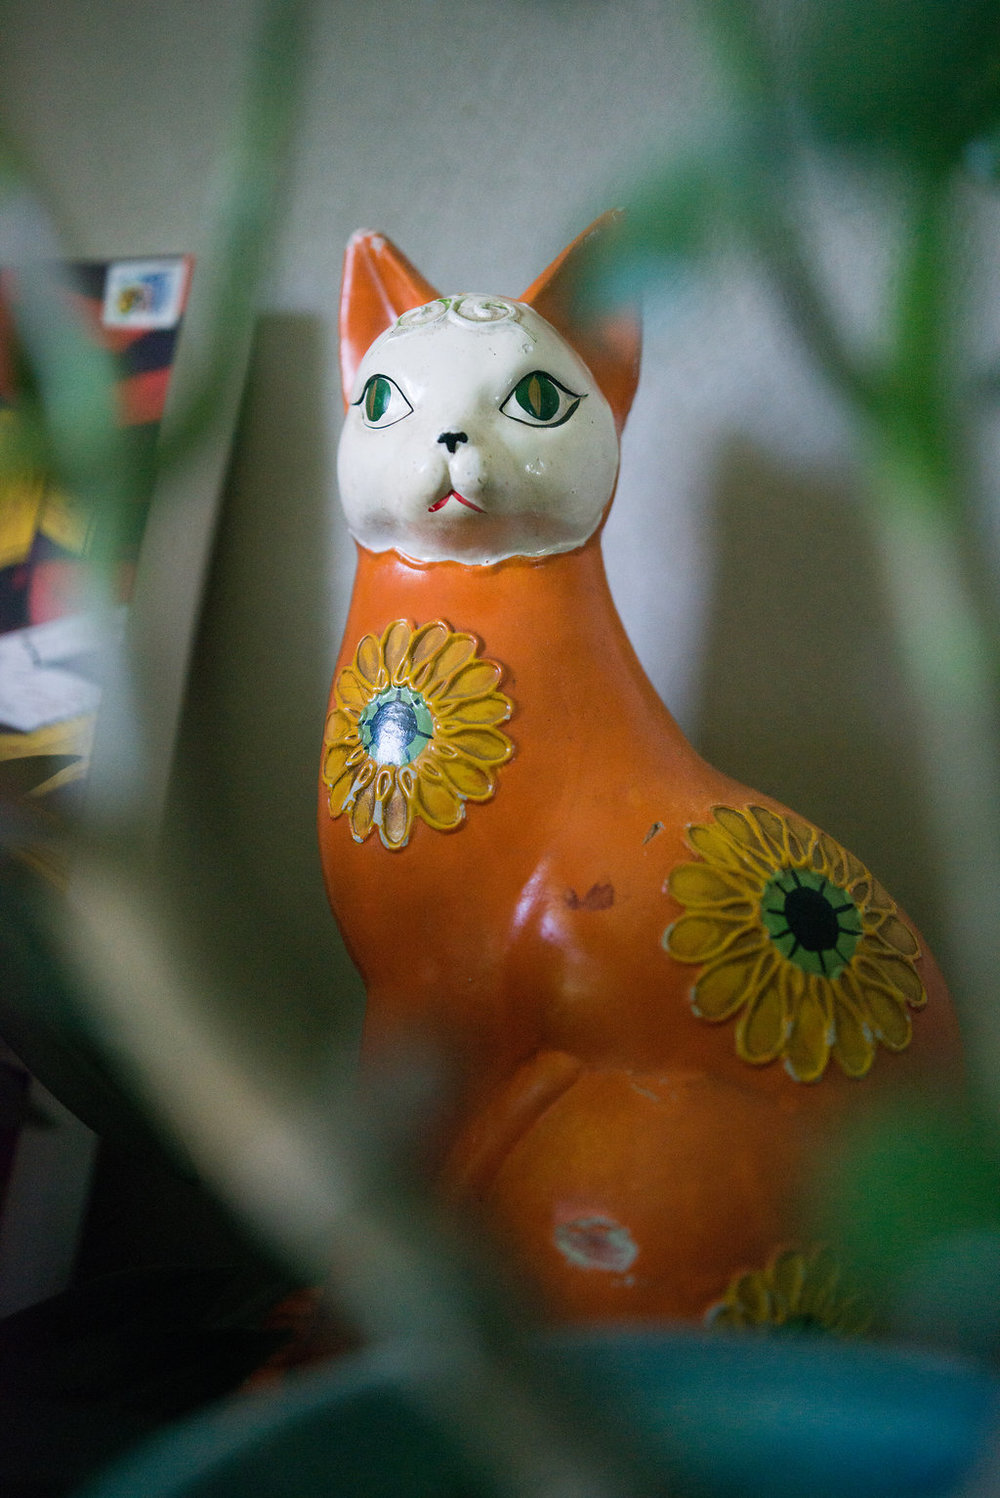 The papier mache cat that Rob bought for me for Mother's Day.